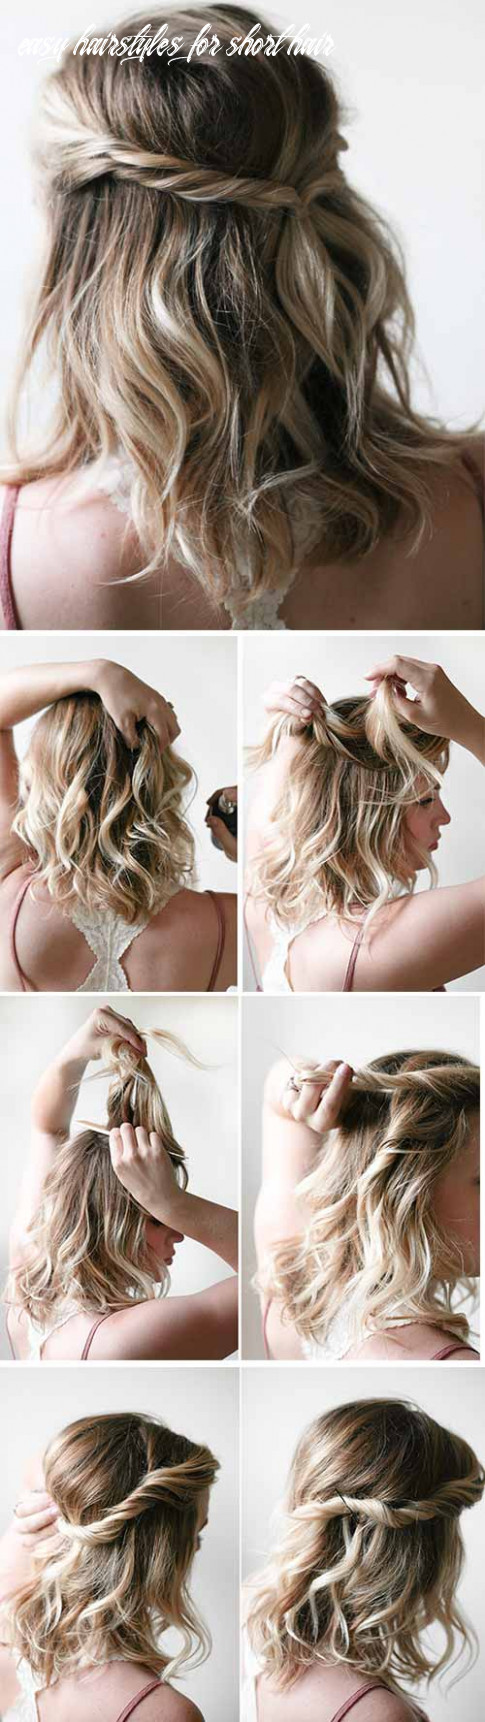 10 incredible diy short hairstyles a step by step guide easy hairstyles for short hair